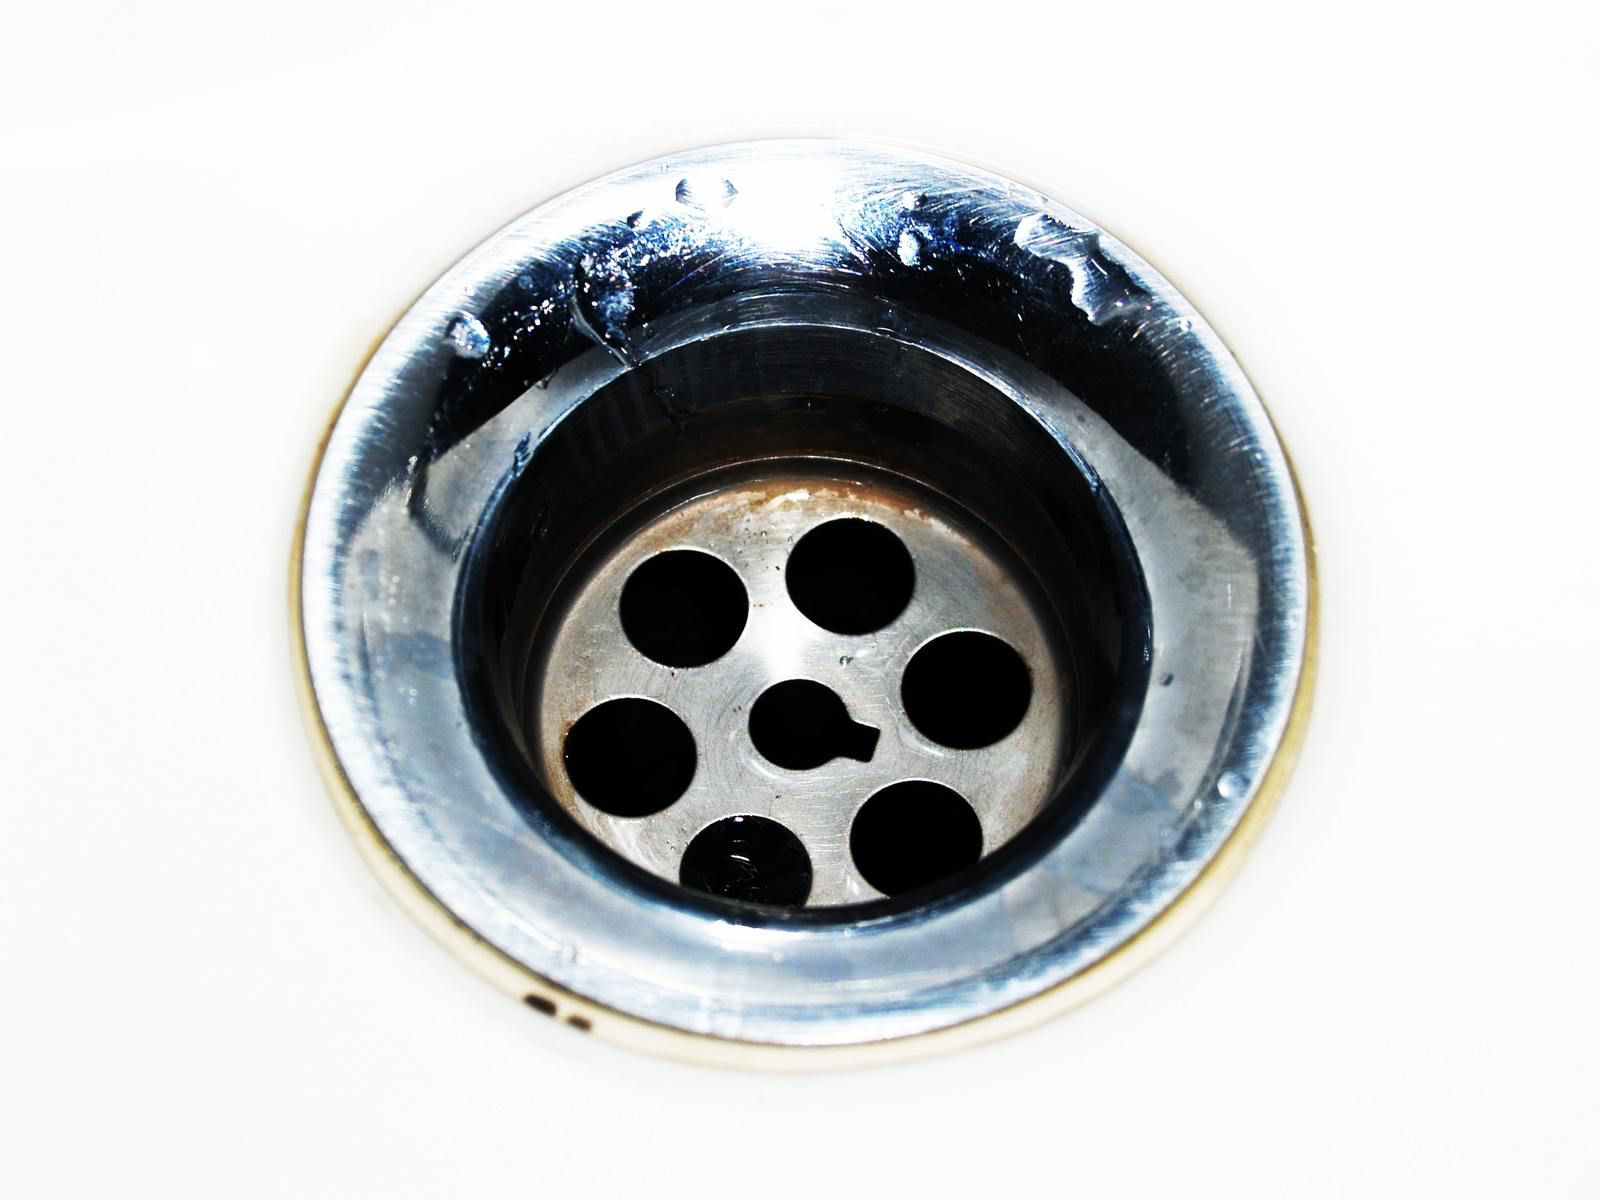 Save Your Drains from Clogging—Use Filters for Garbage Disposal